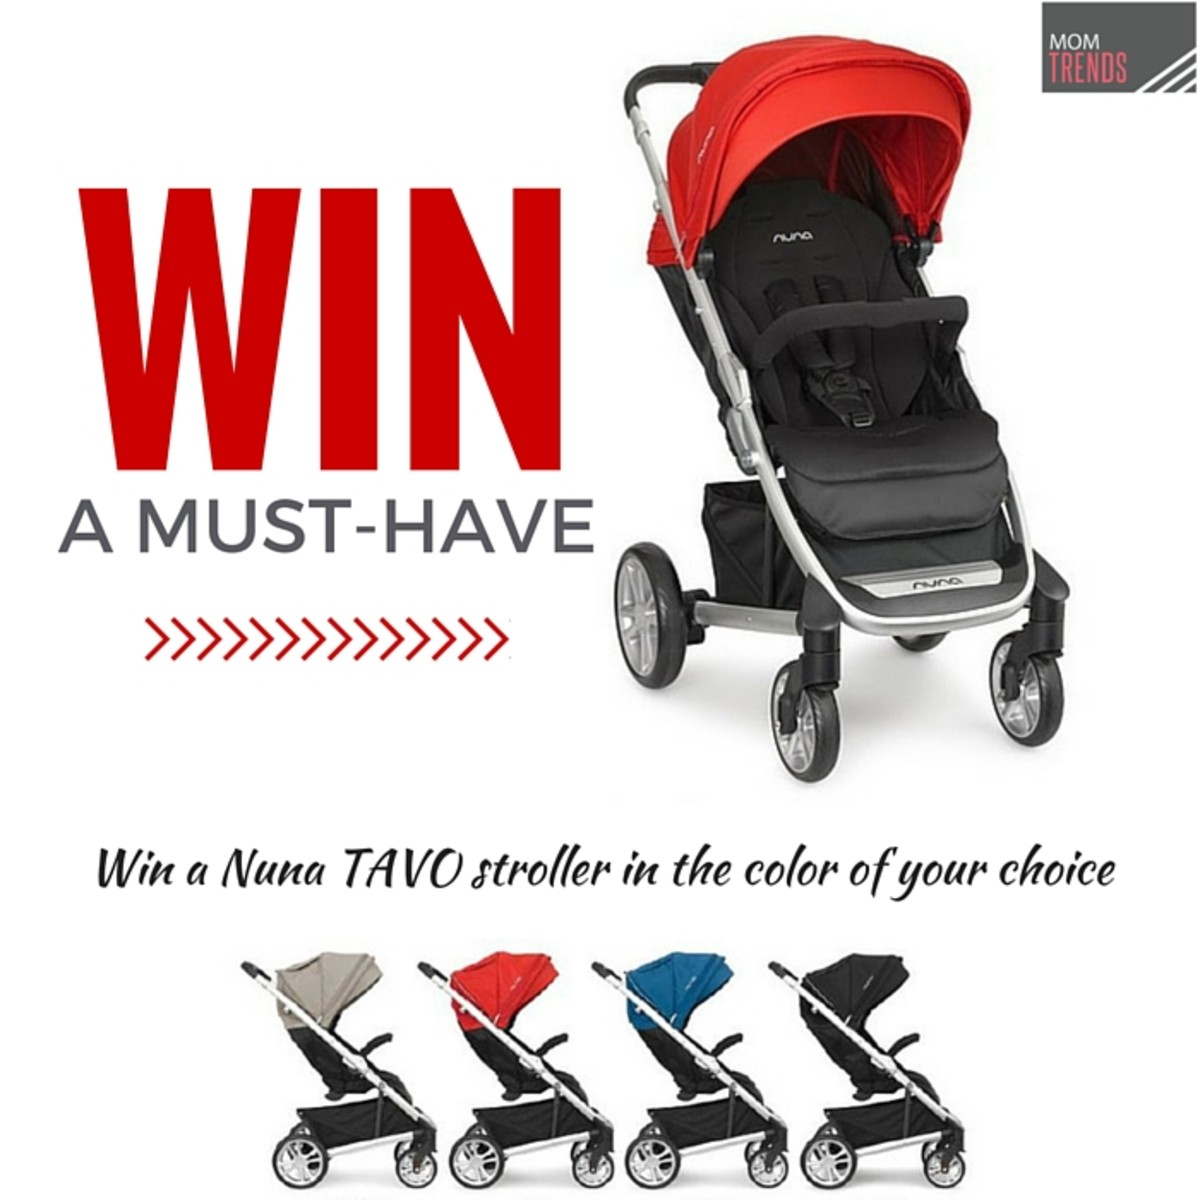 Nuna Tavo Stroller Giveaway on Momtrends